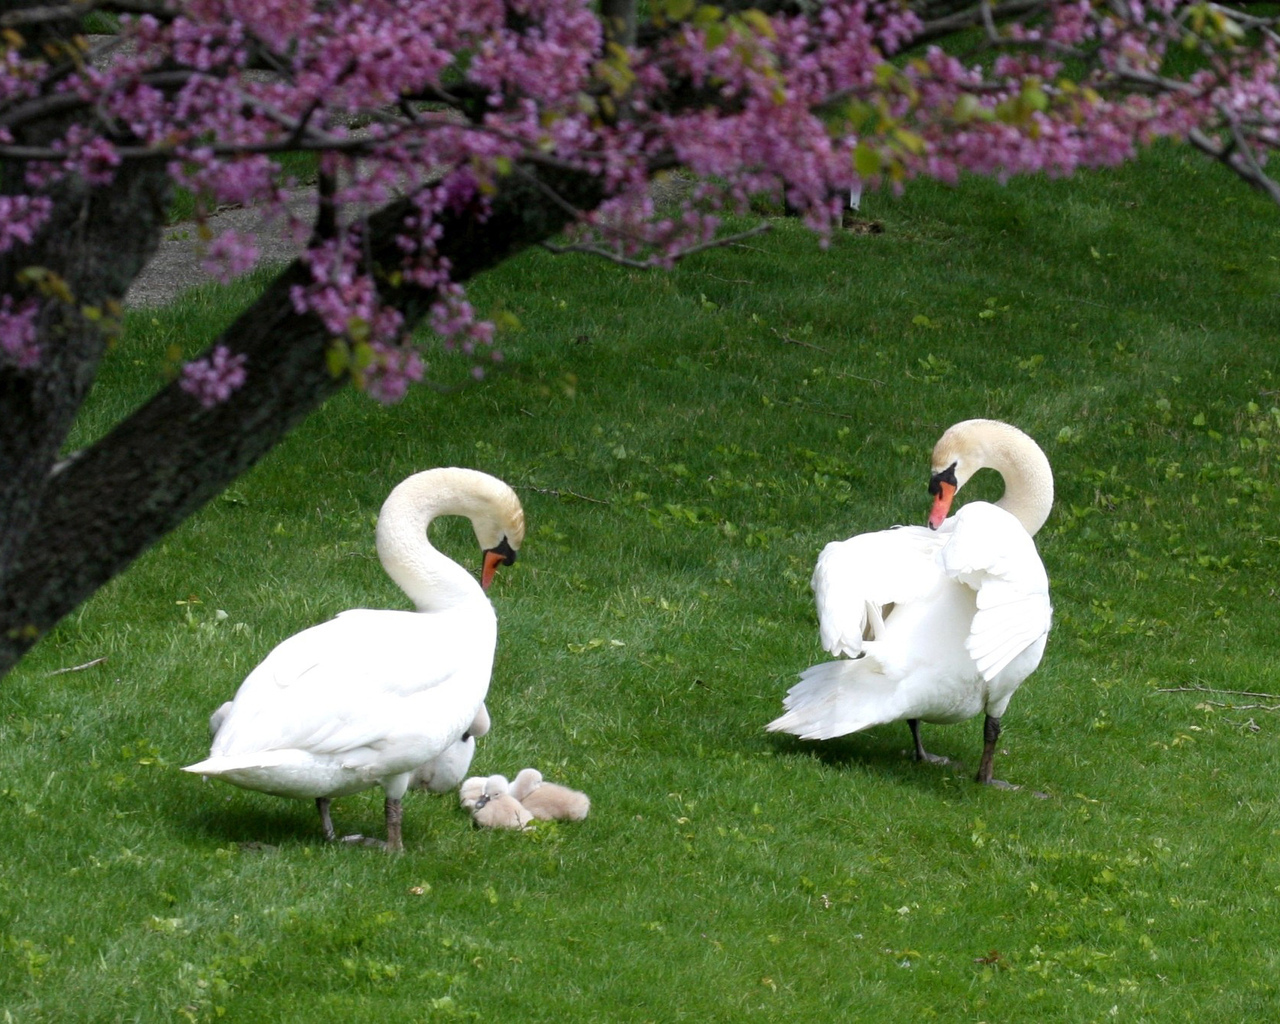 22473 download wallpaper Animals, Birds, Swans screensavers and pictures for free